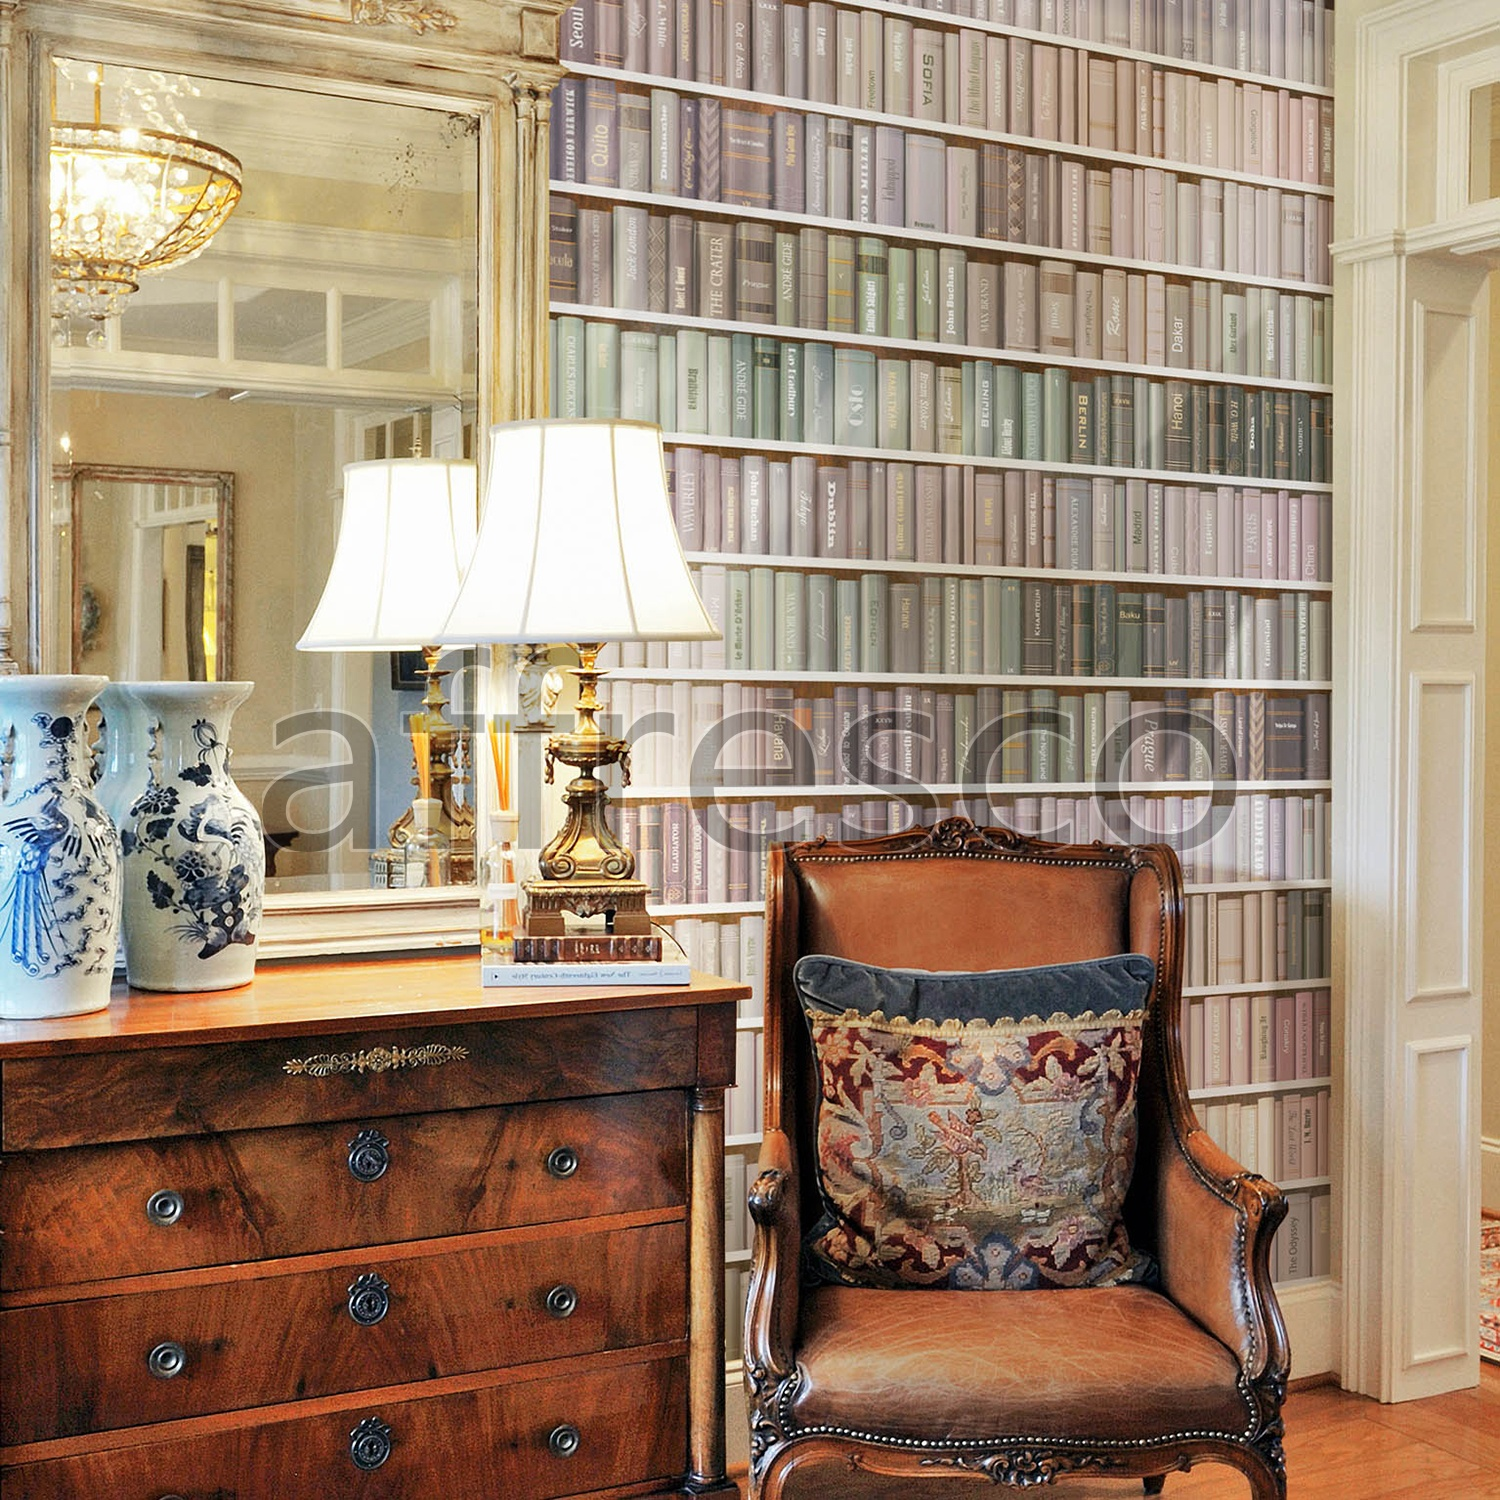 Handmade wallpaper, Handmade wallpaper | Library